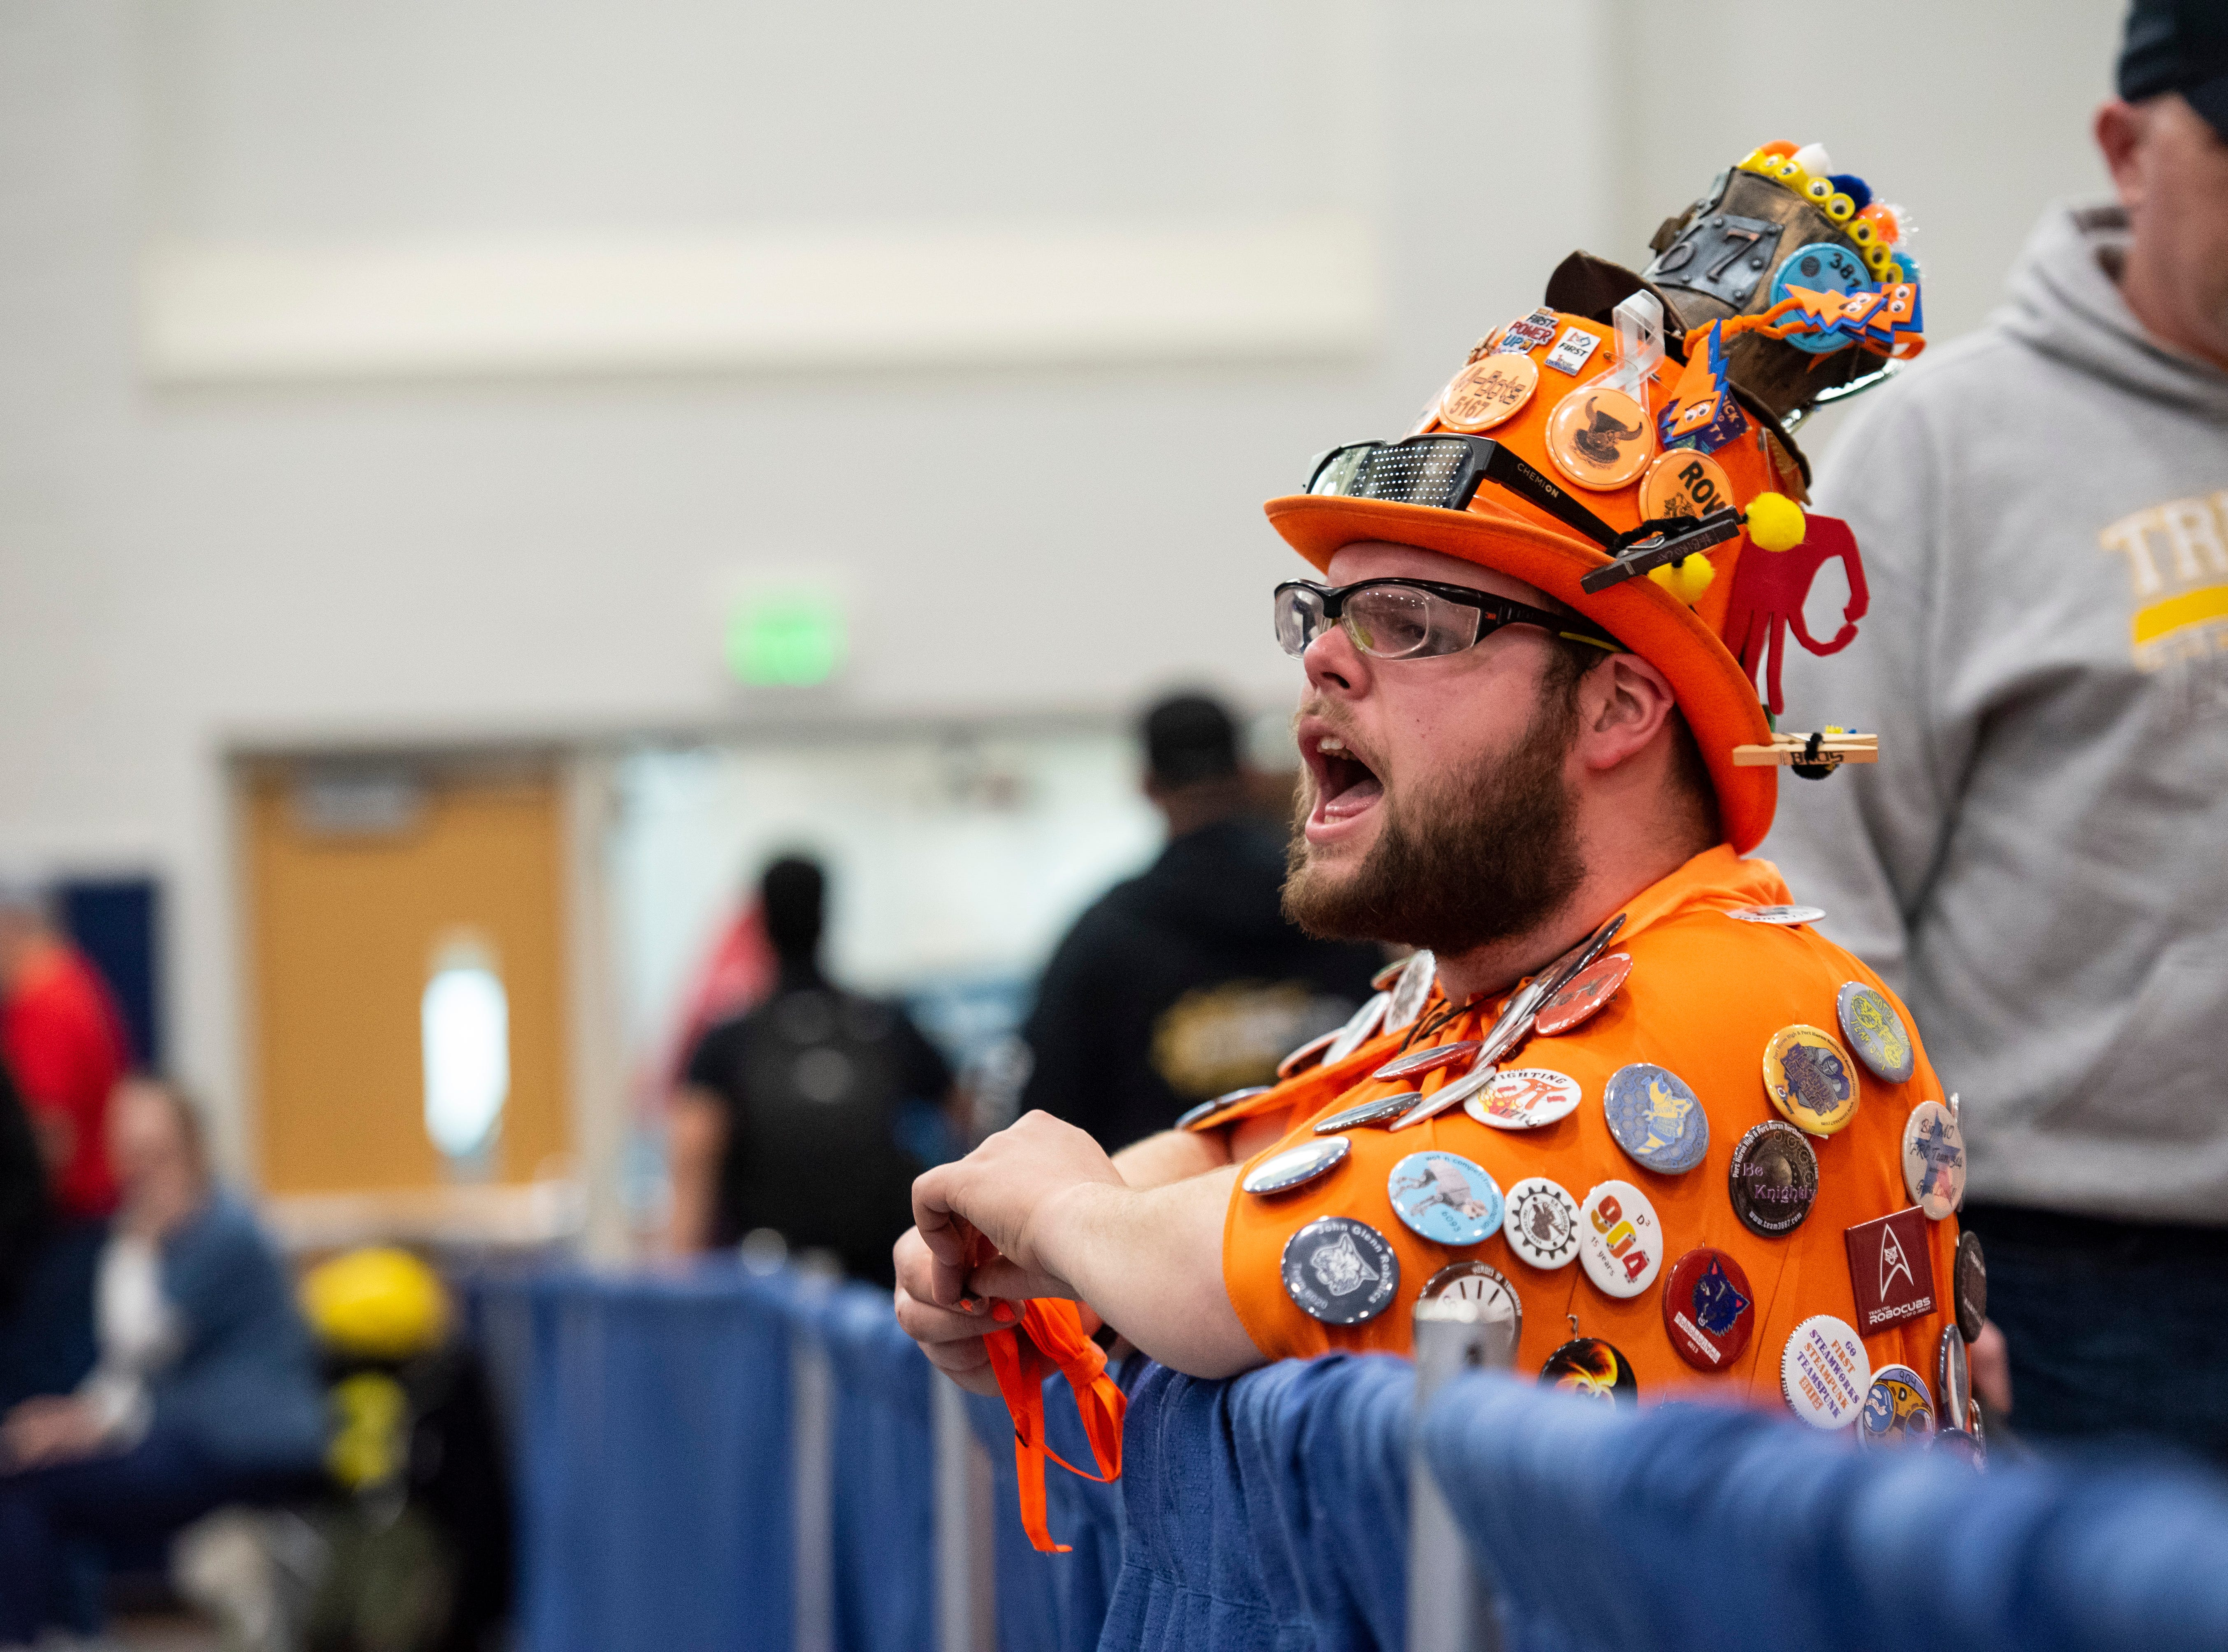 Marysville senior Dion Stephenson cheers from the crowd during the FIRST Robotics district event Friday, March 29, 2019 at Marysville High School.